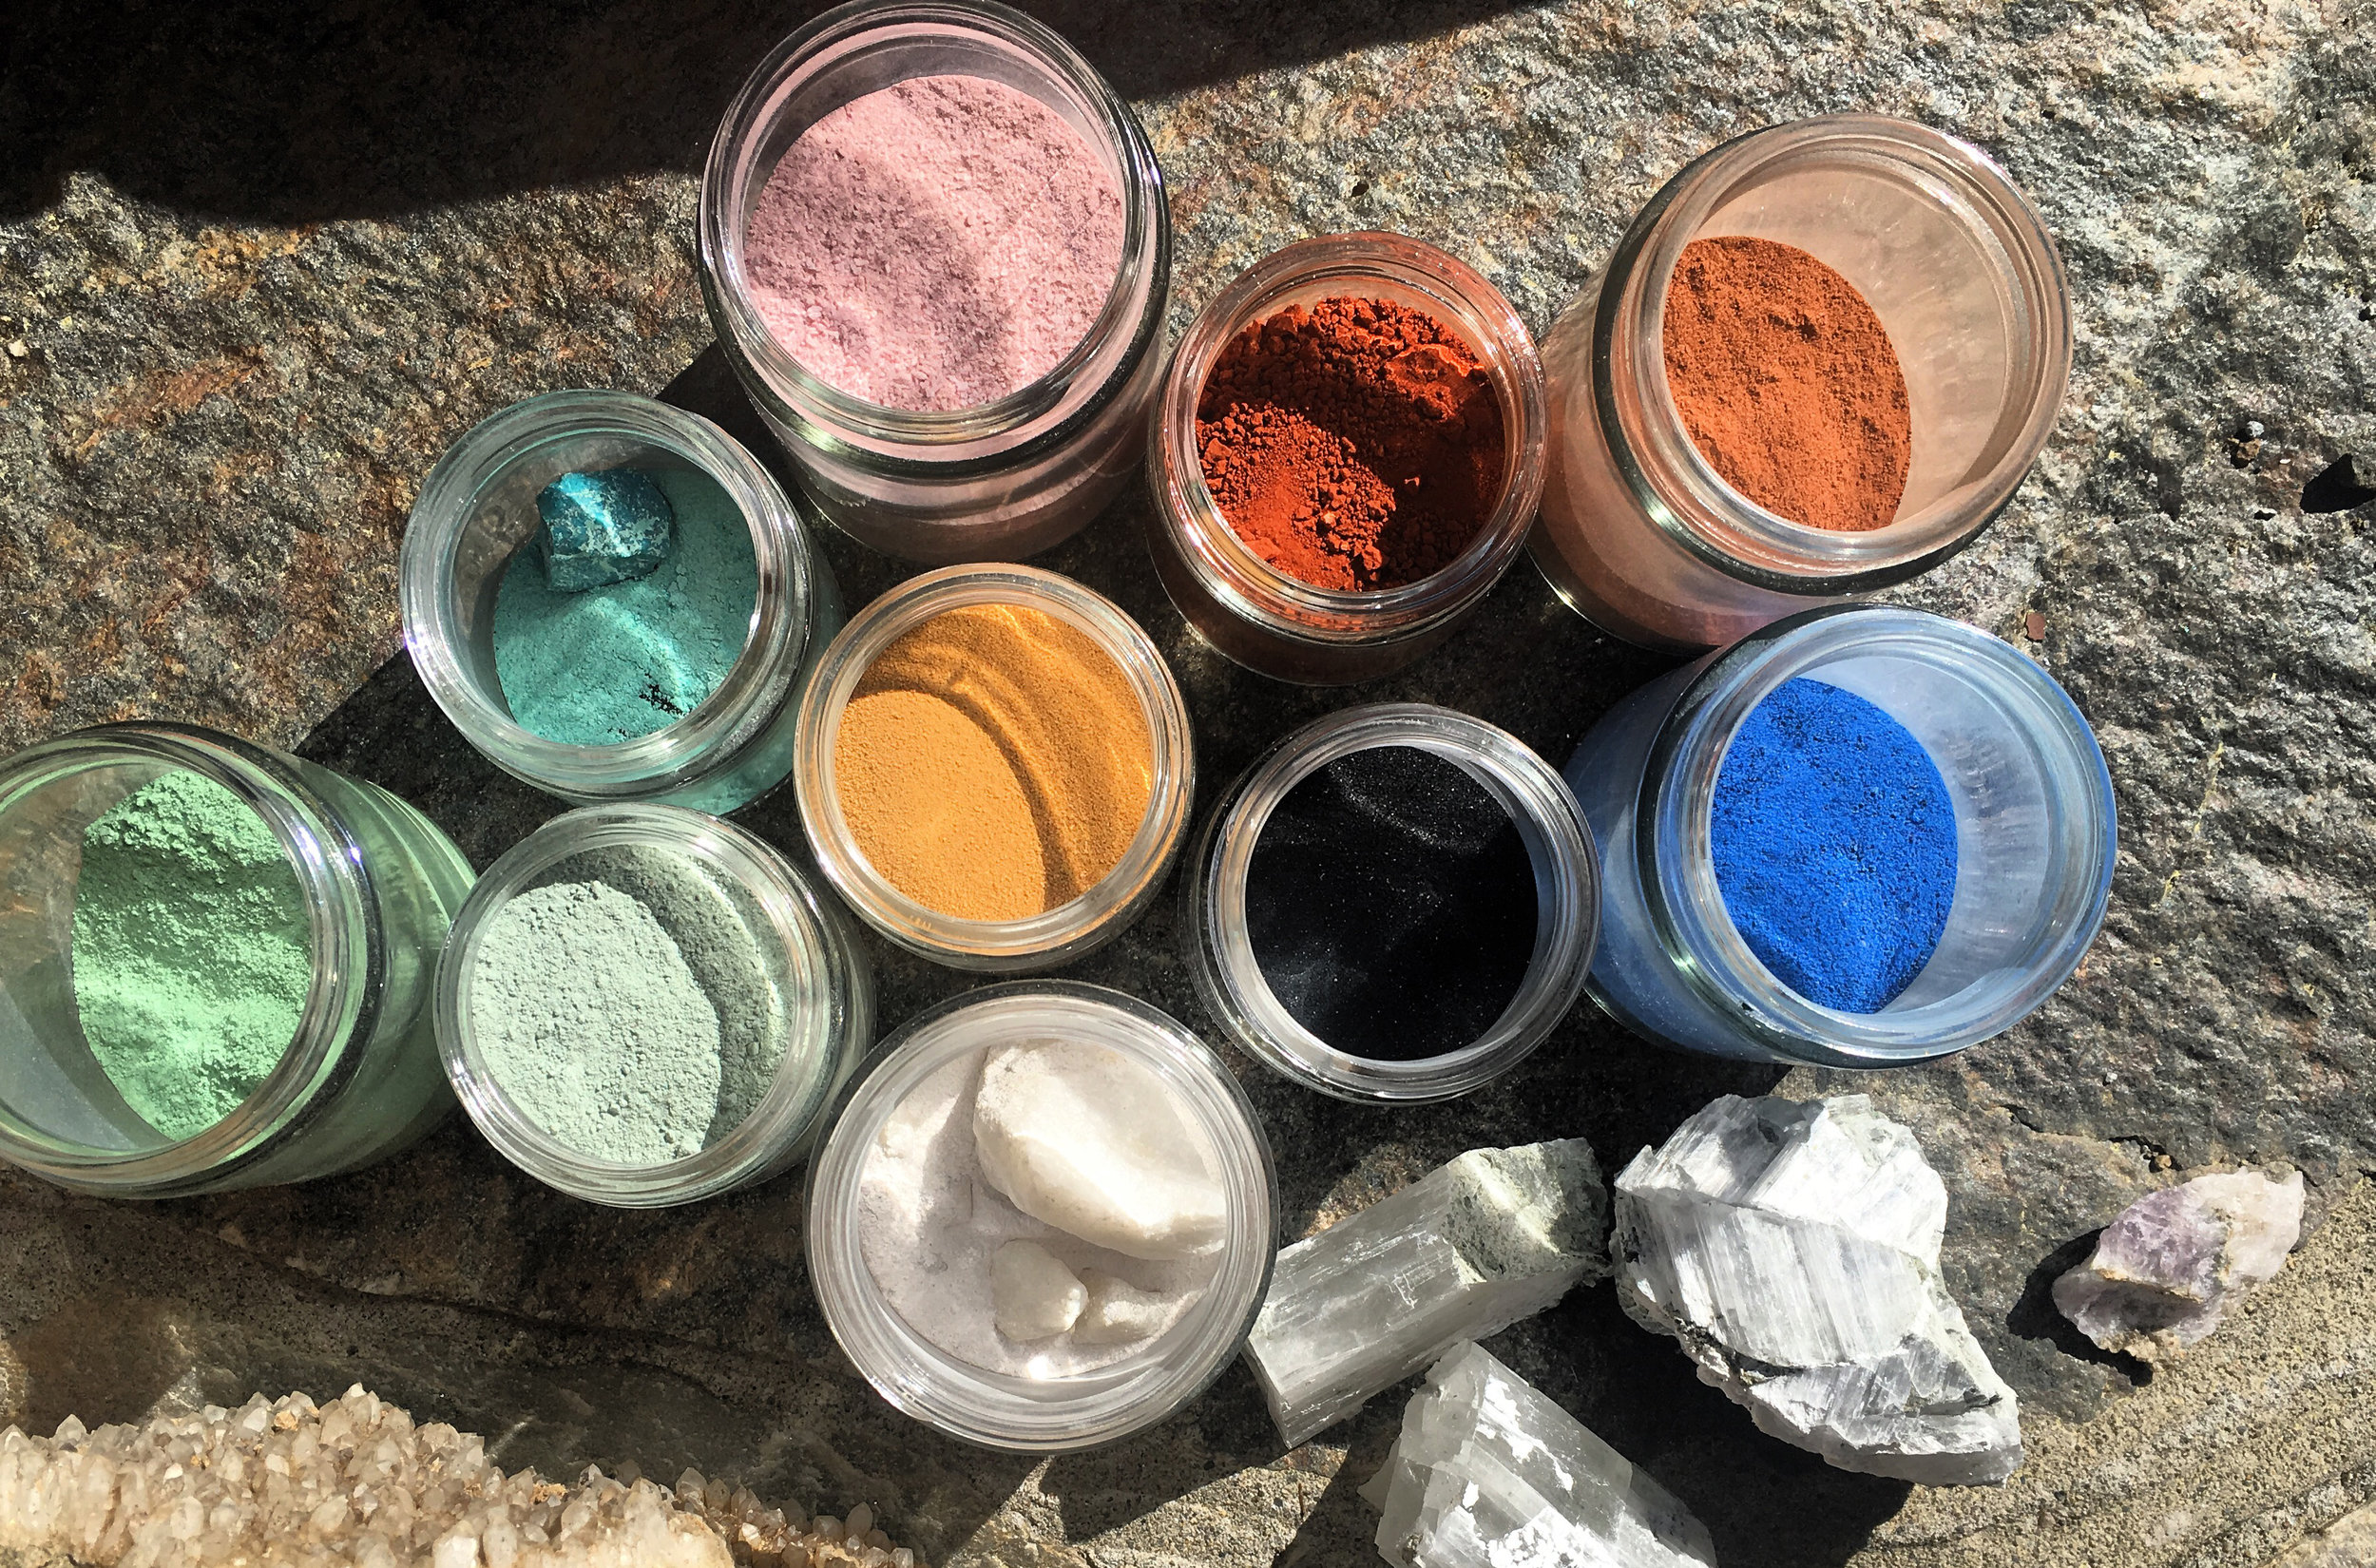 The process - The process of making rocks and minerals into pigments